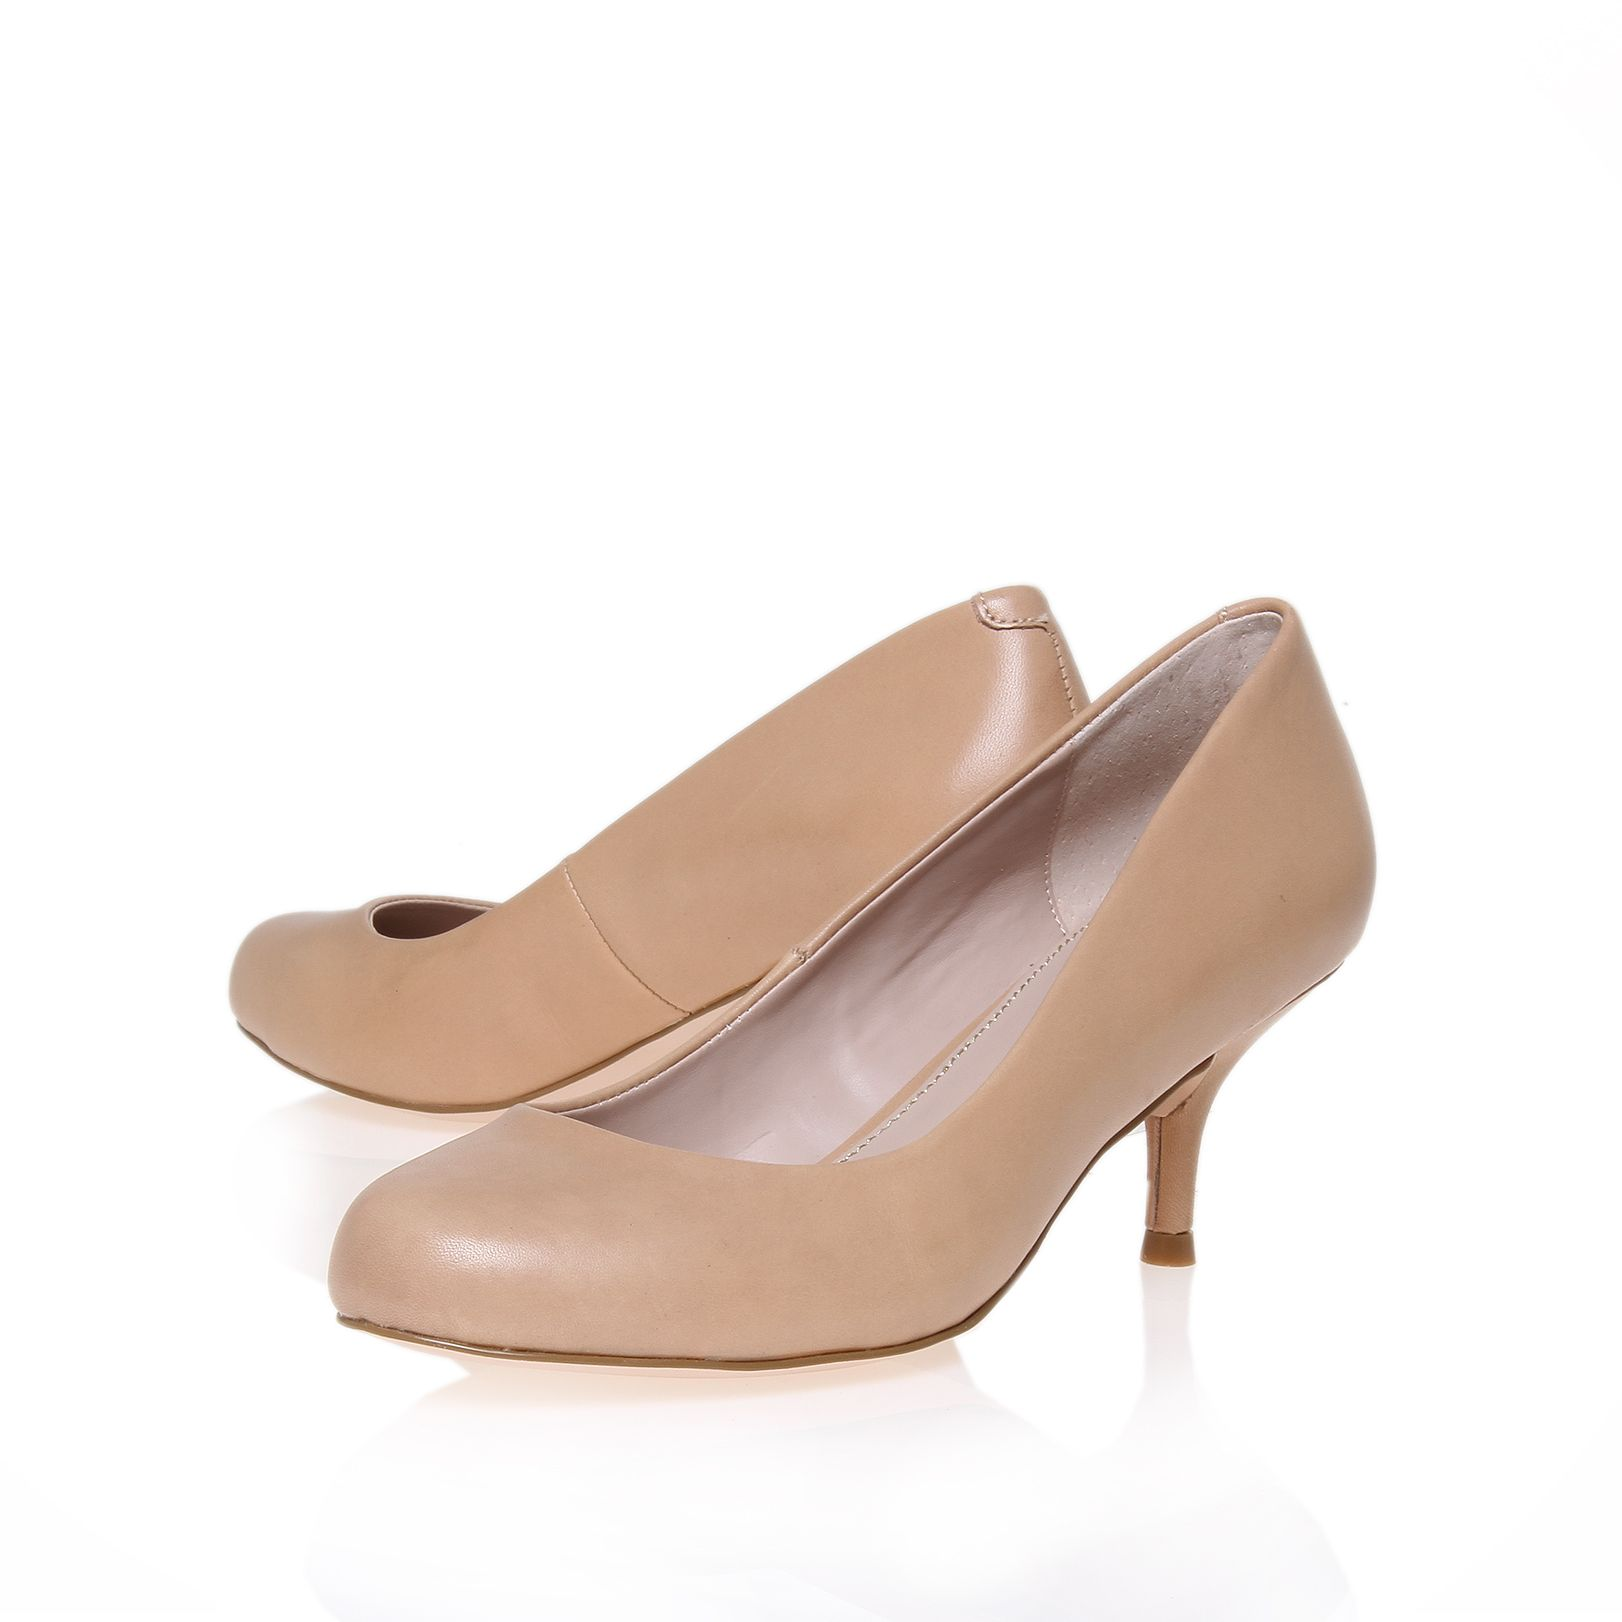 Amica court shoes